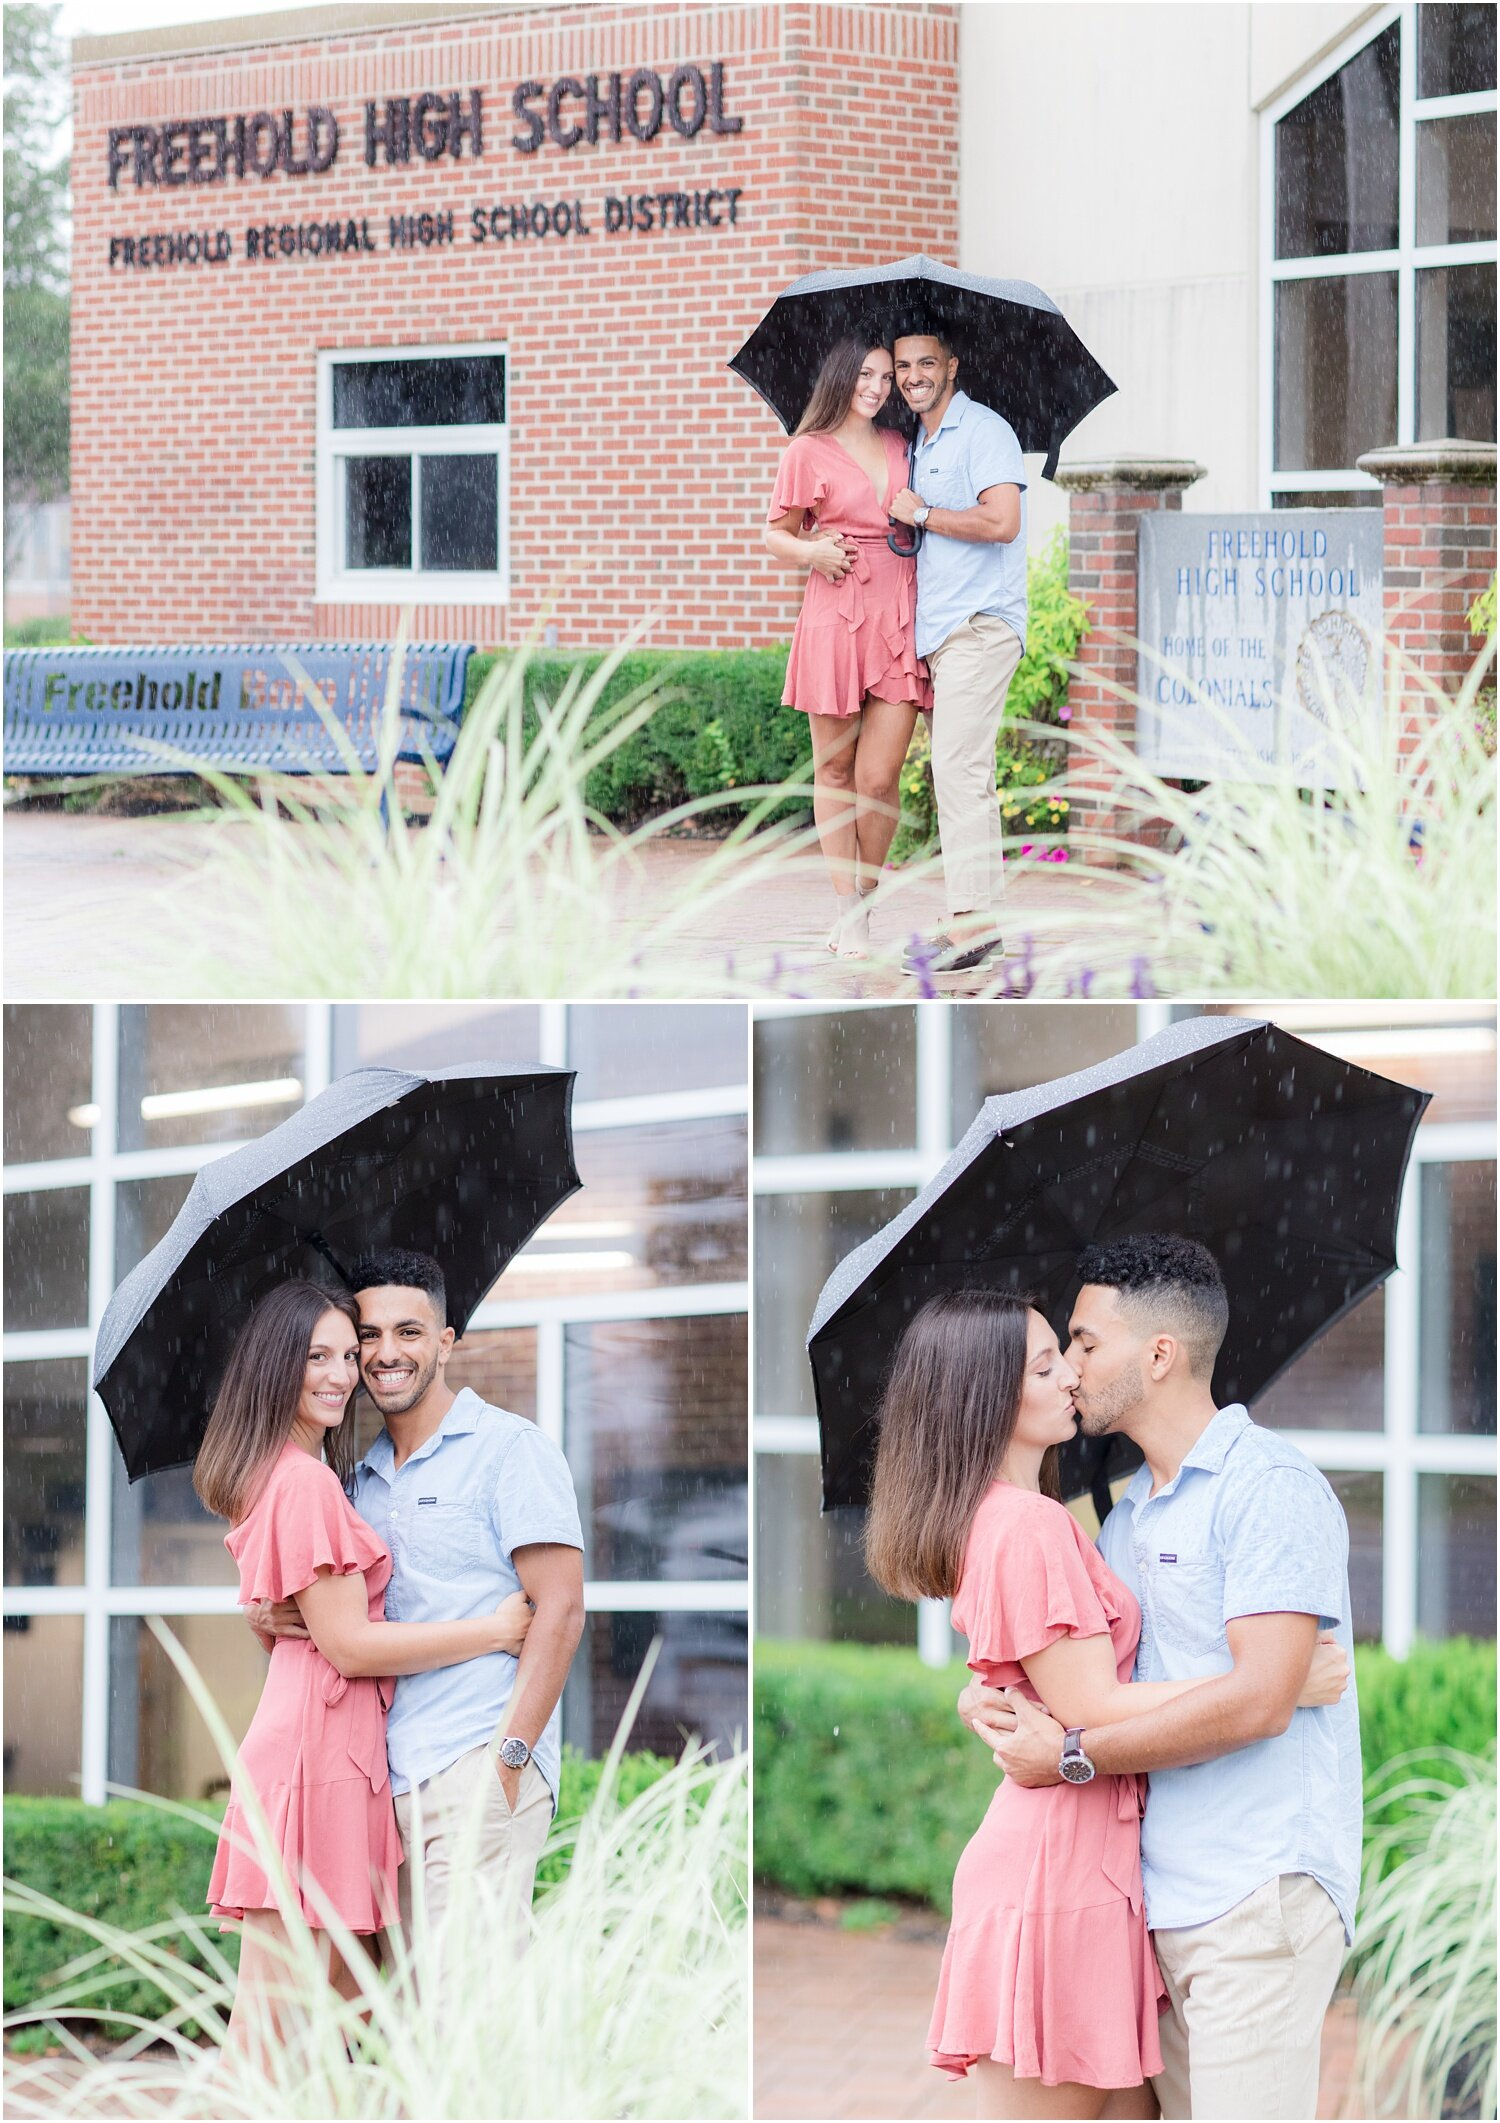 Rainy engagement photos at Freehold high school.